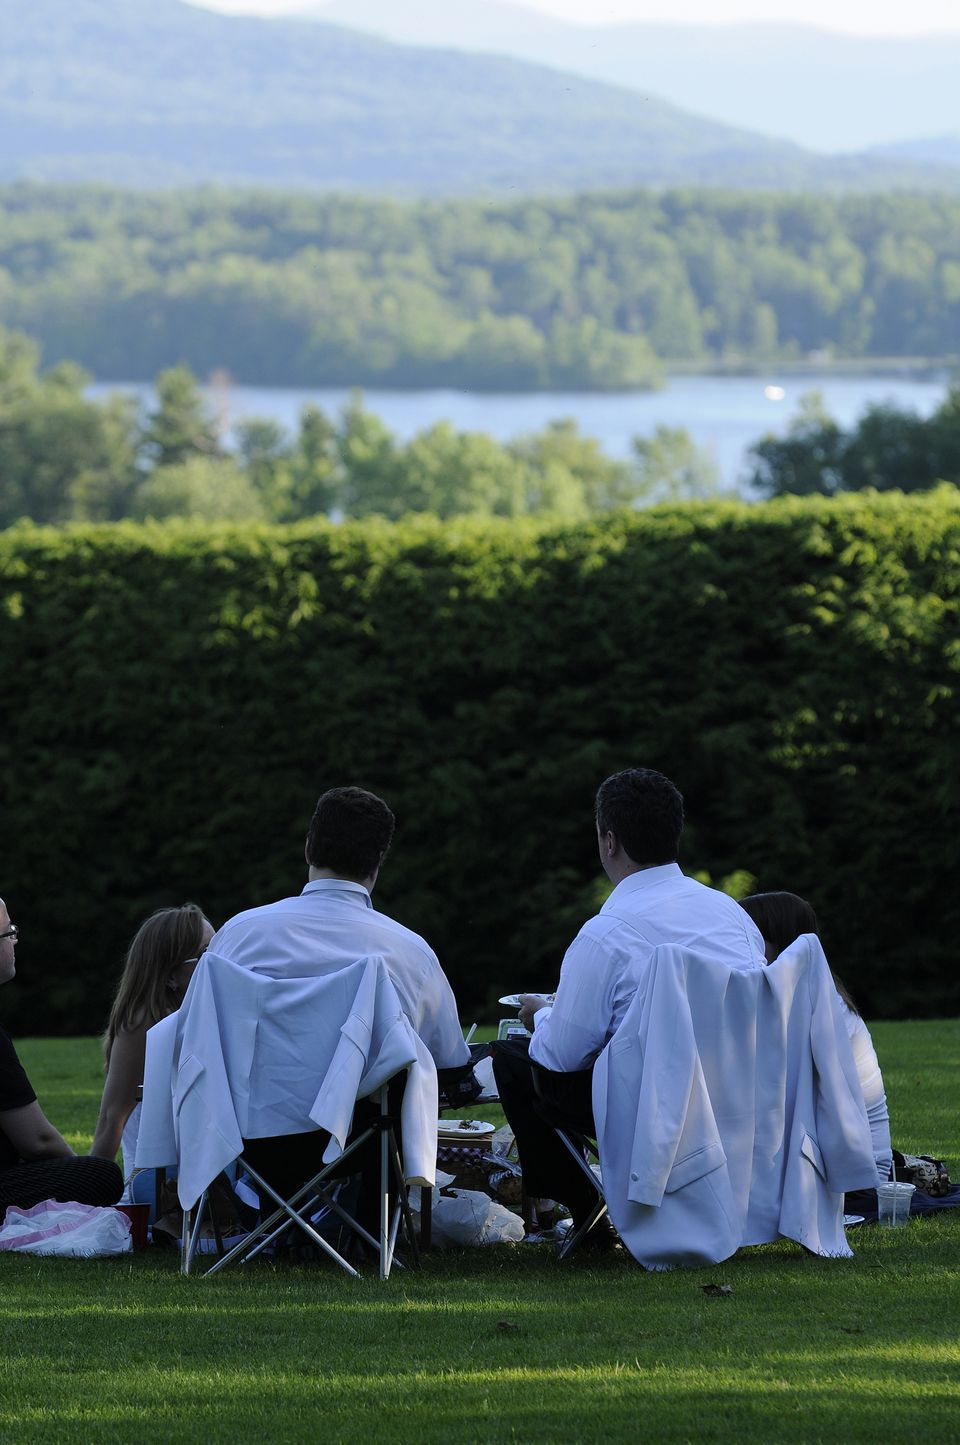 Concertgoers in Lenox picnic on the lawn at Tanglewood.